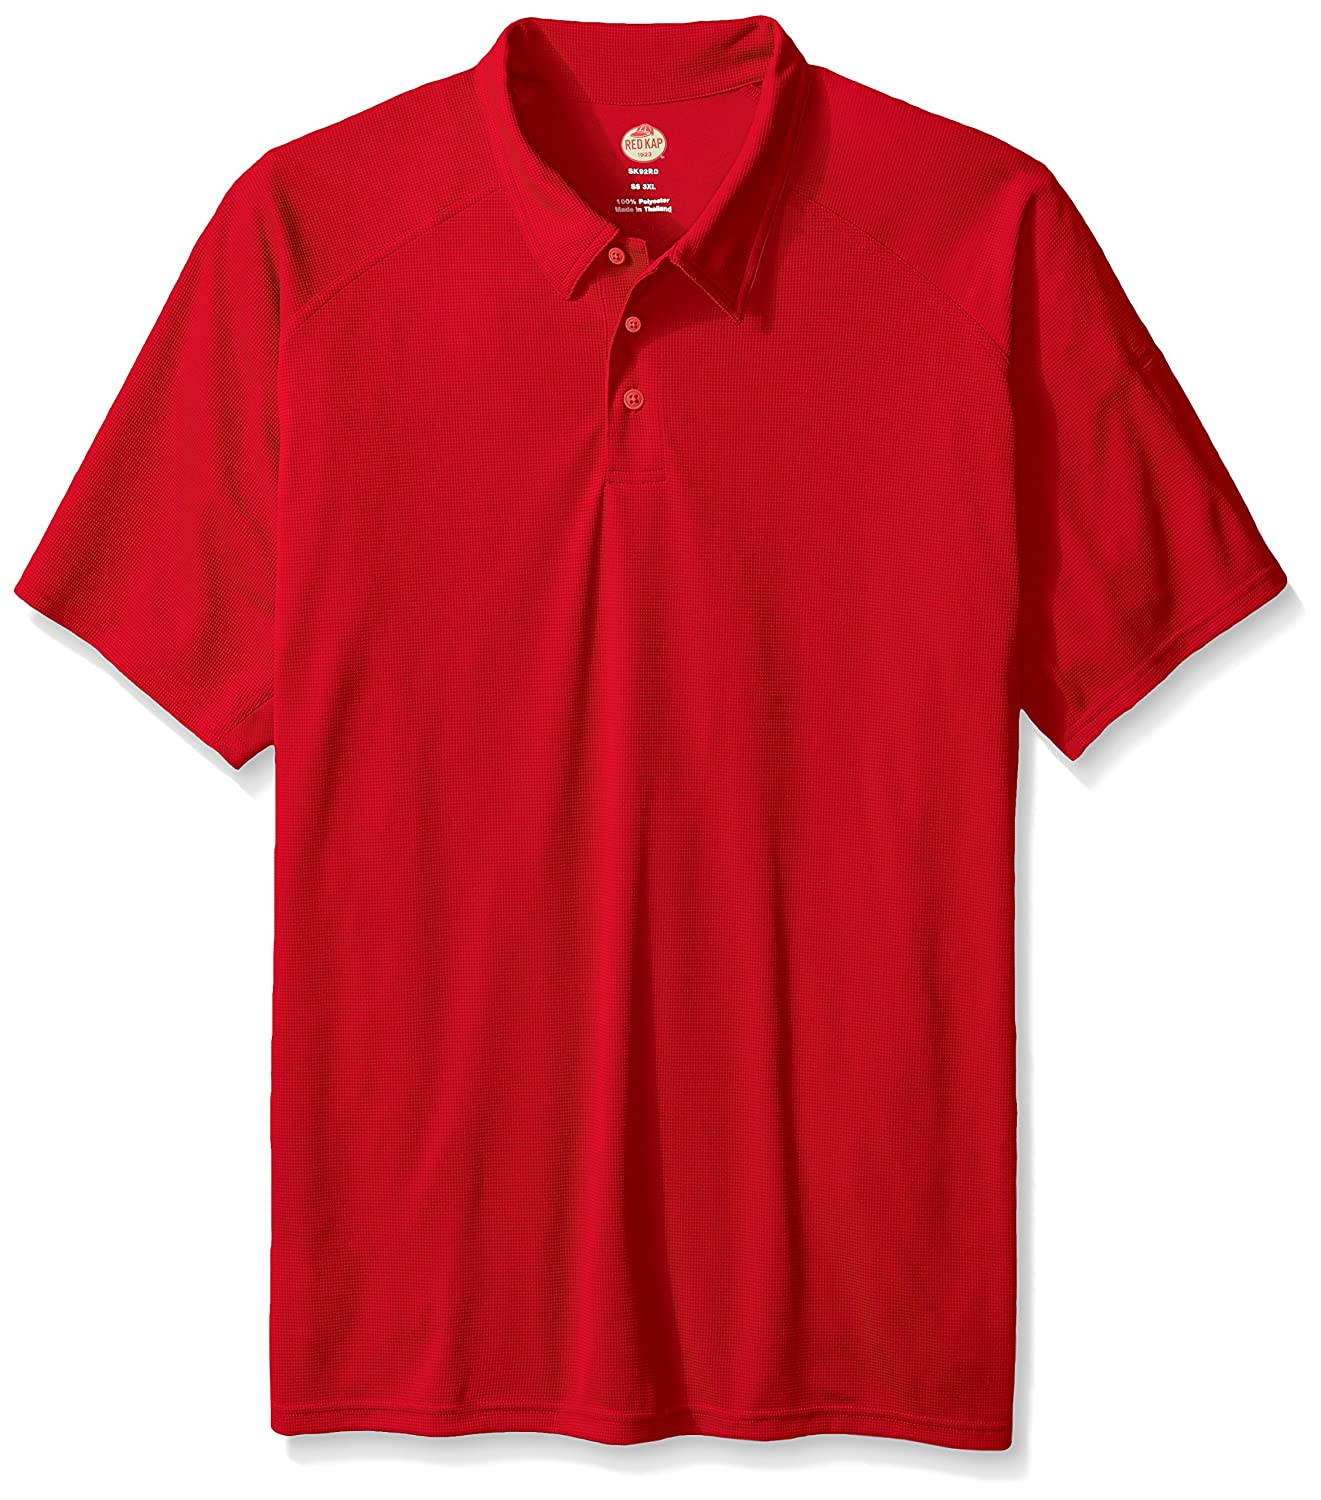 4c82e4b371de1 Amazon.com  Red Kap Men s Big and Tall Big   Tall Active Performance Polo  Shirt  Clothing